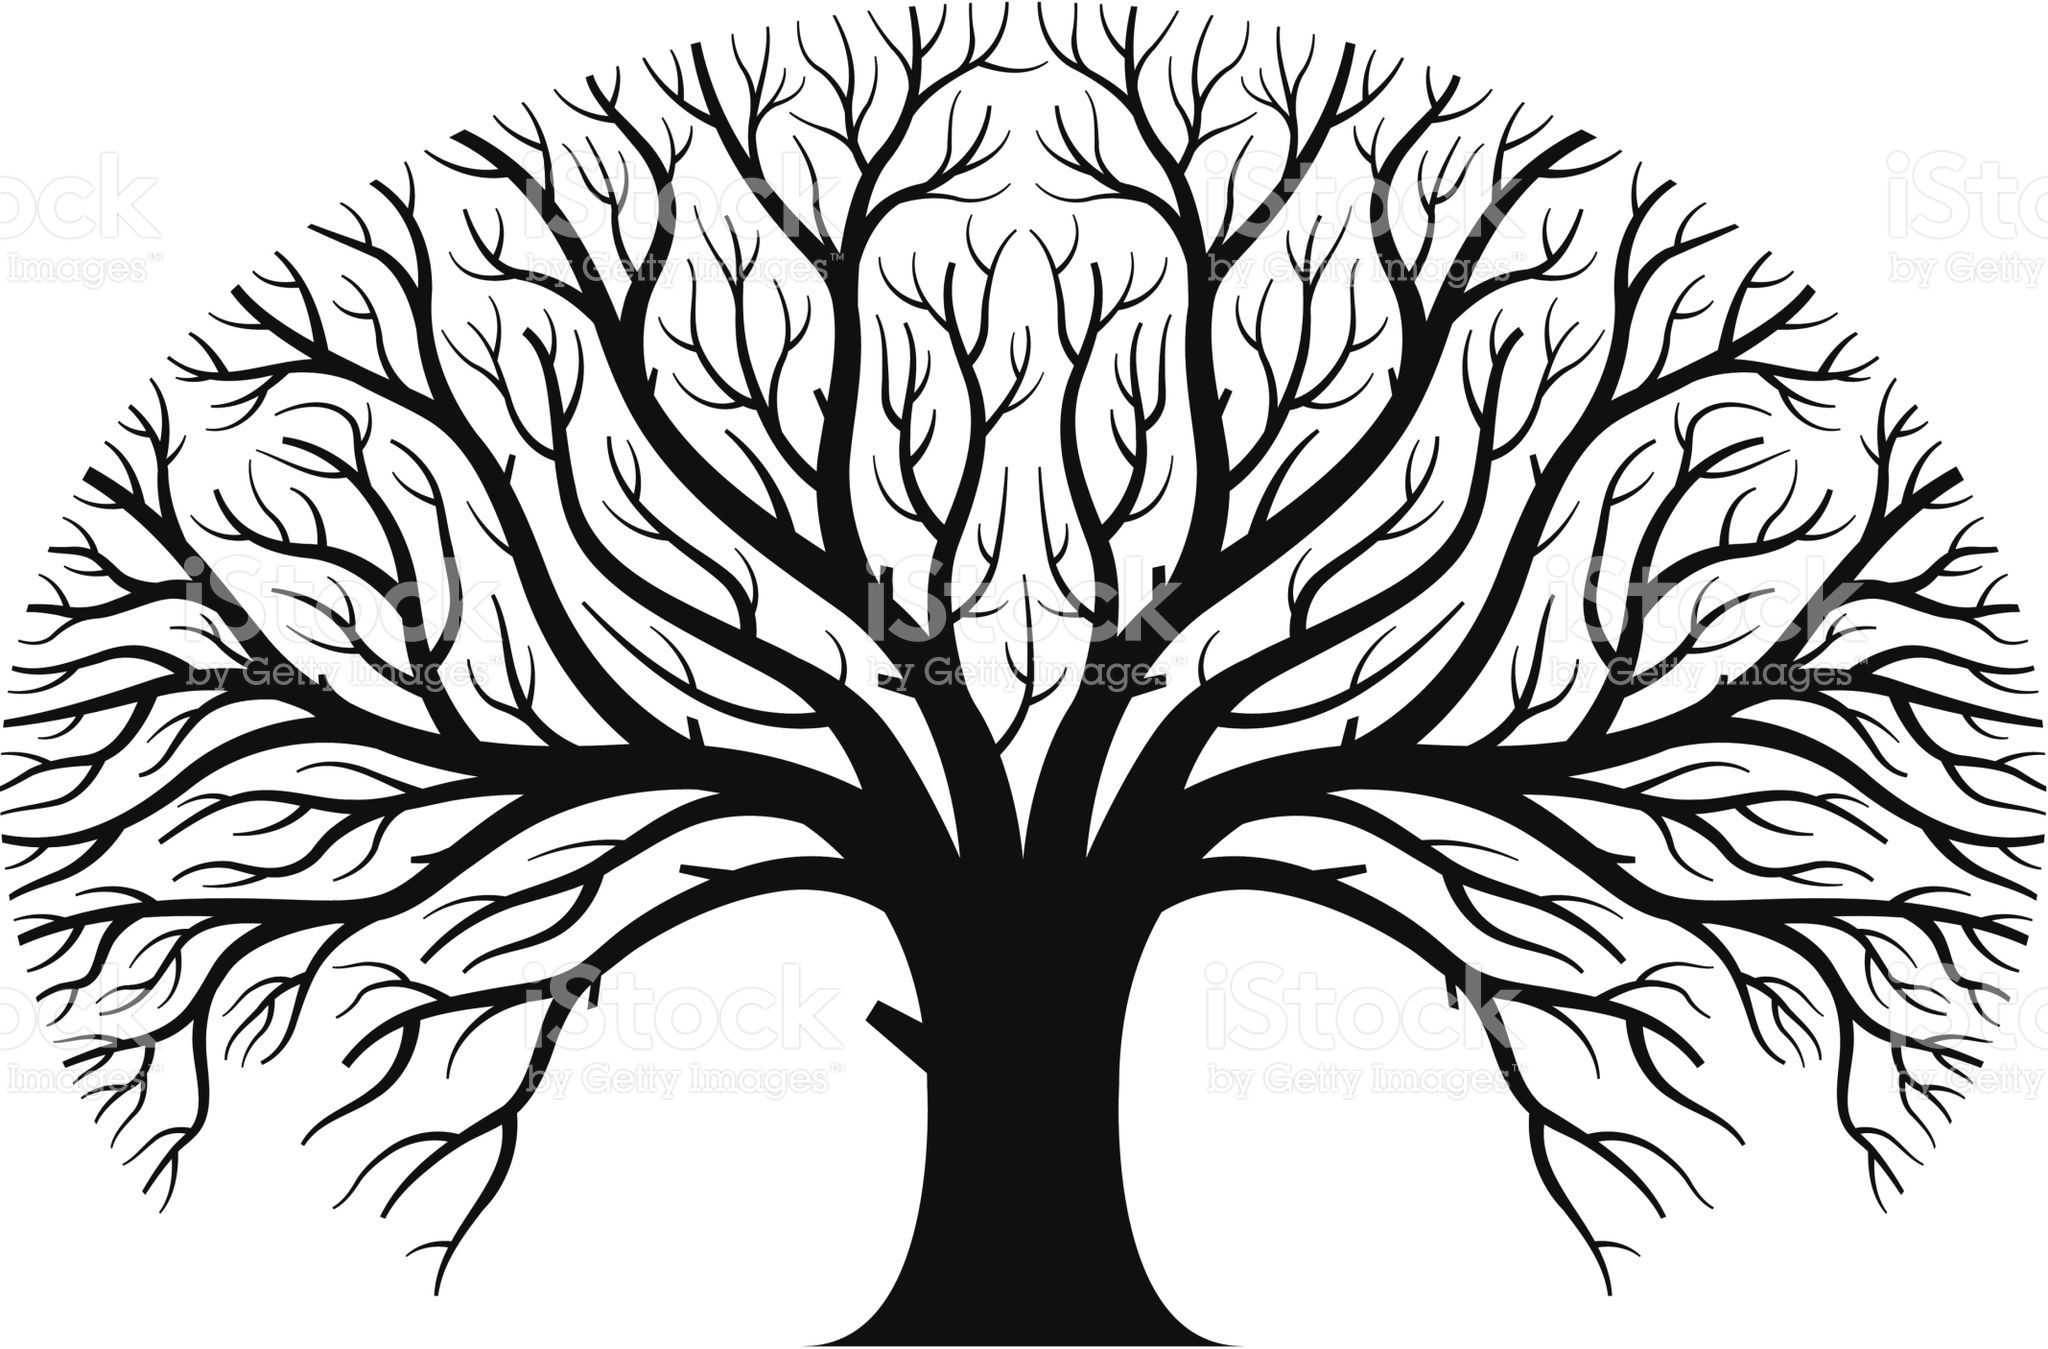 Free Spreading Pics a large spreading tree in silhouette. | vector art, free